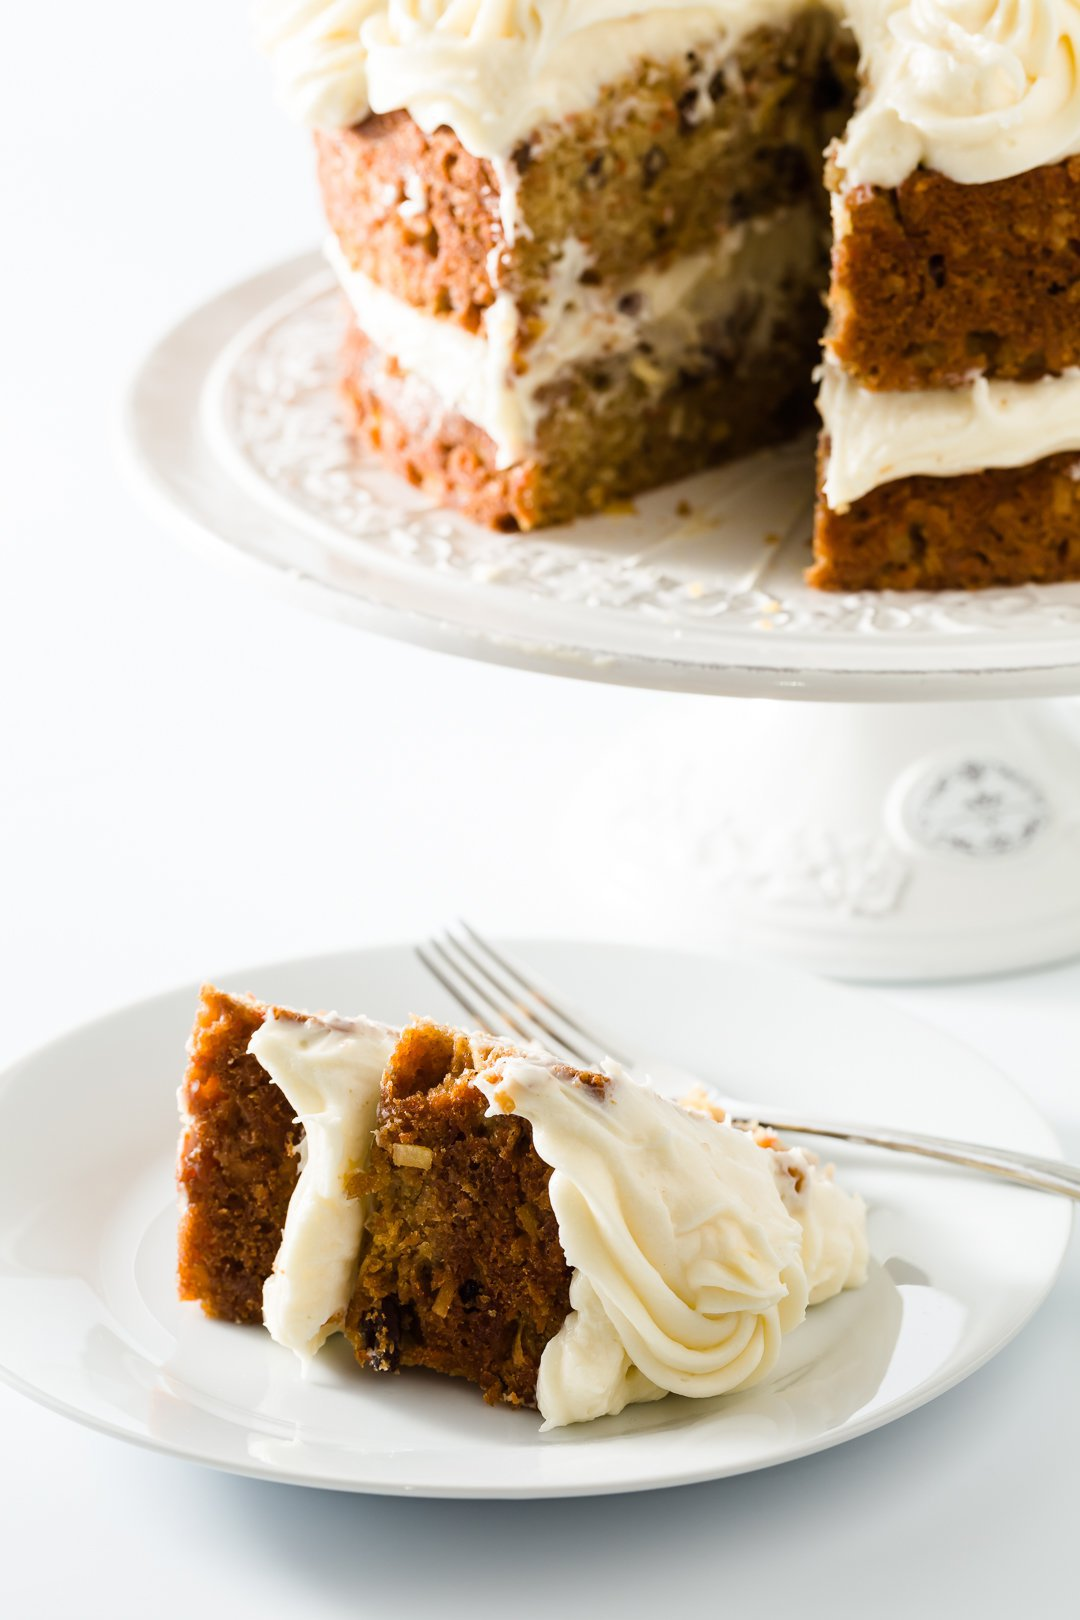 Slice of carrot cake in front of the whole cake